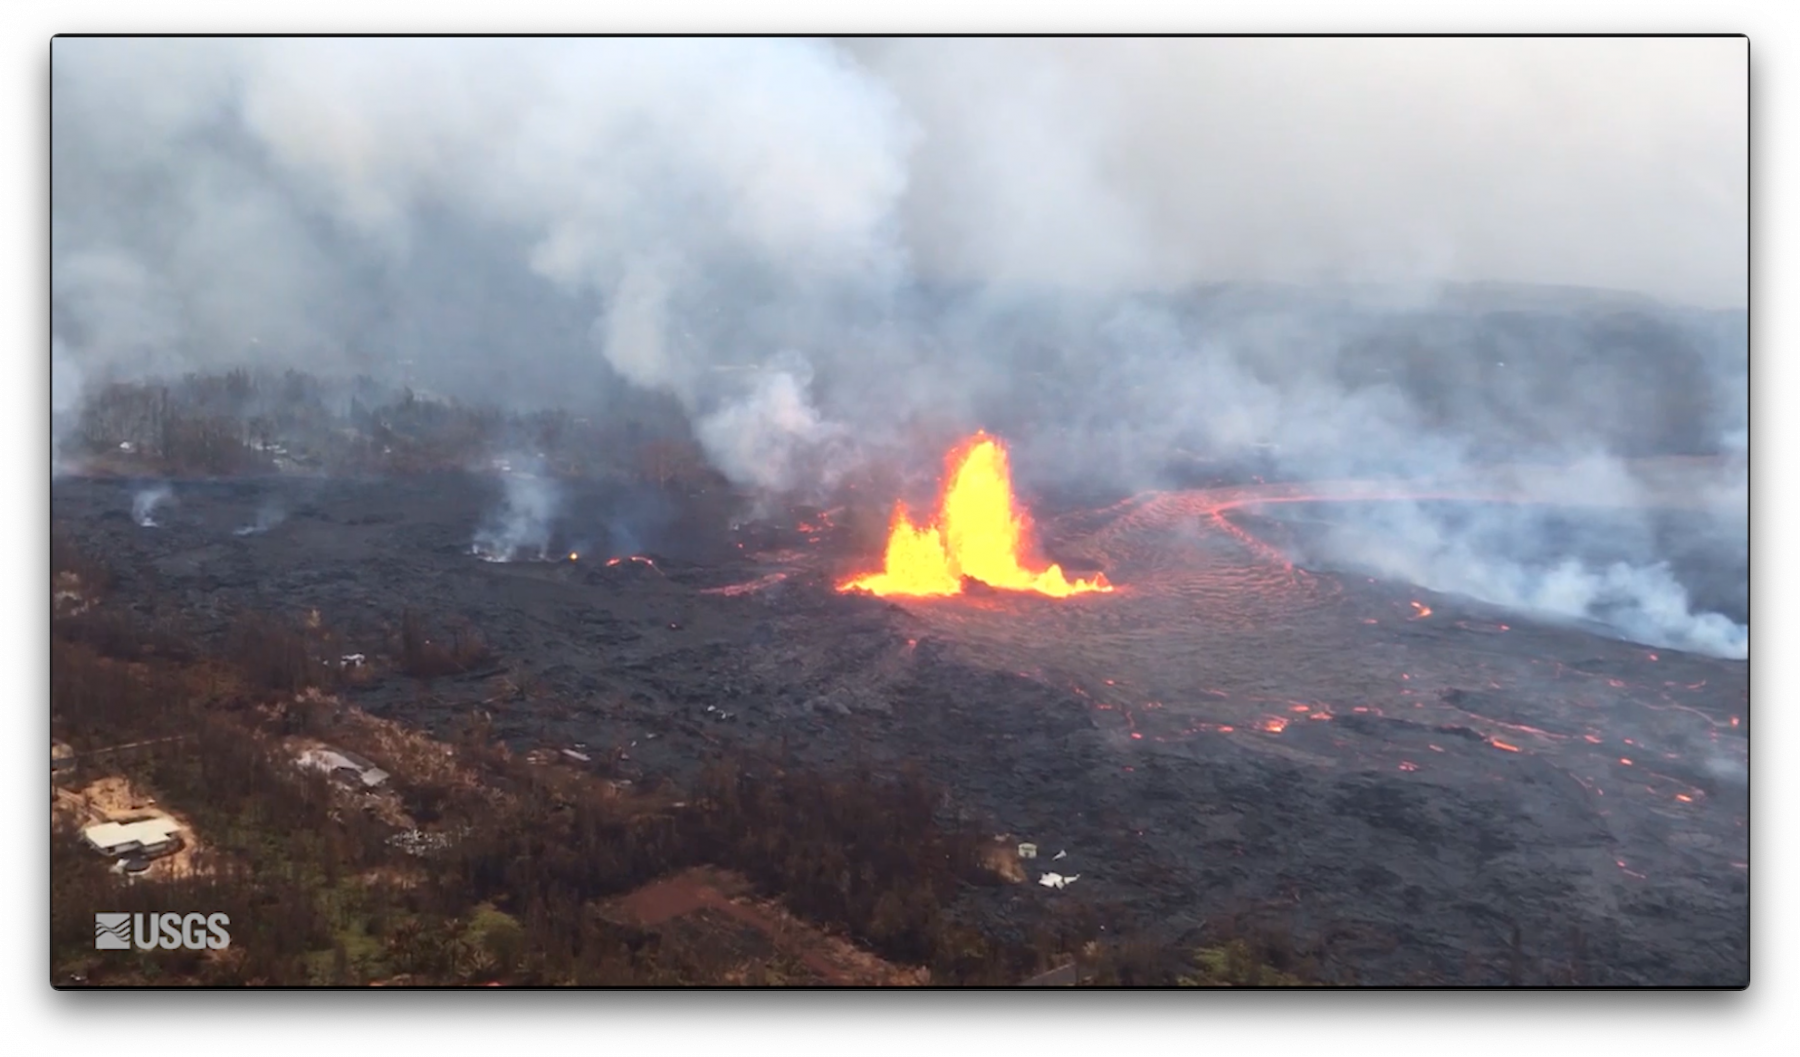 lava flowing from eruption of the Kilauea volcano